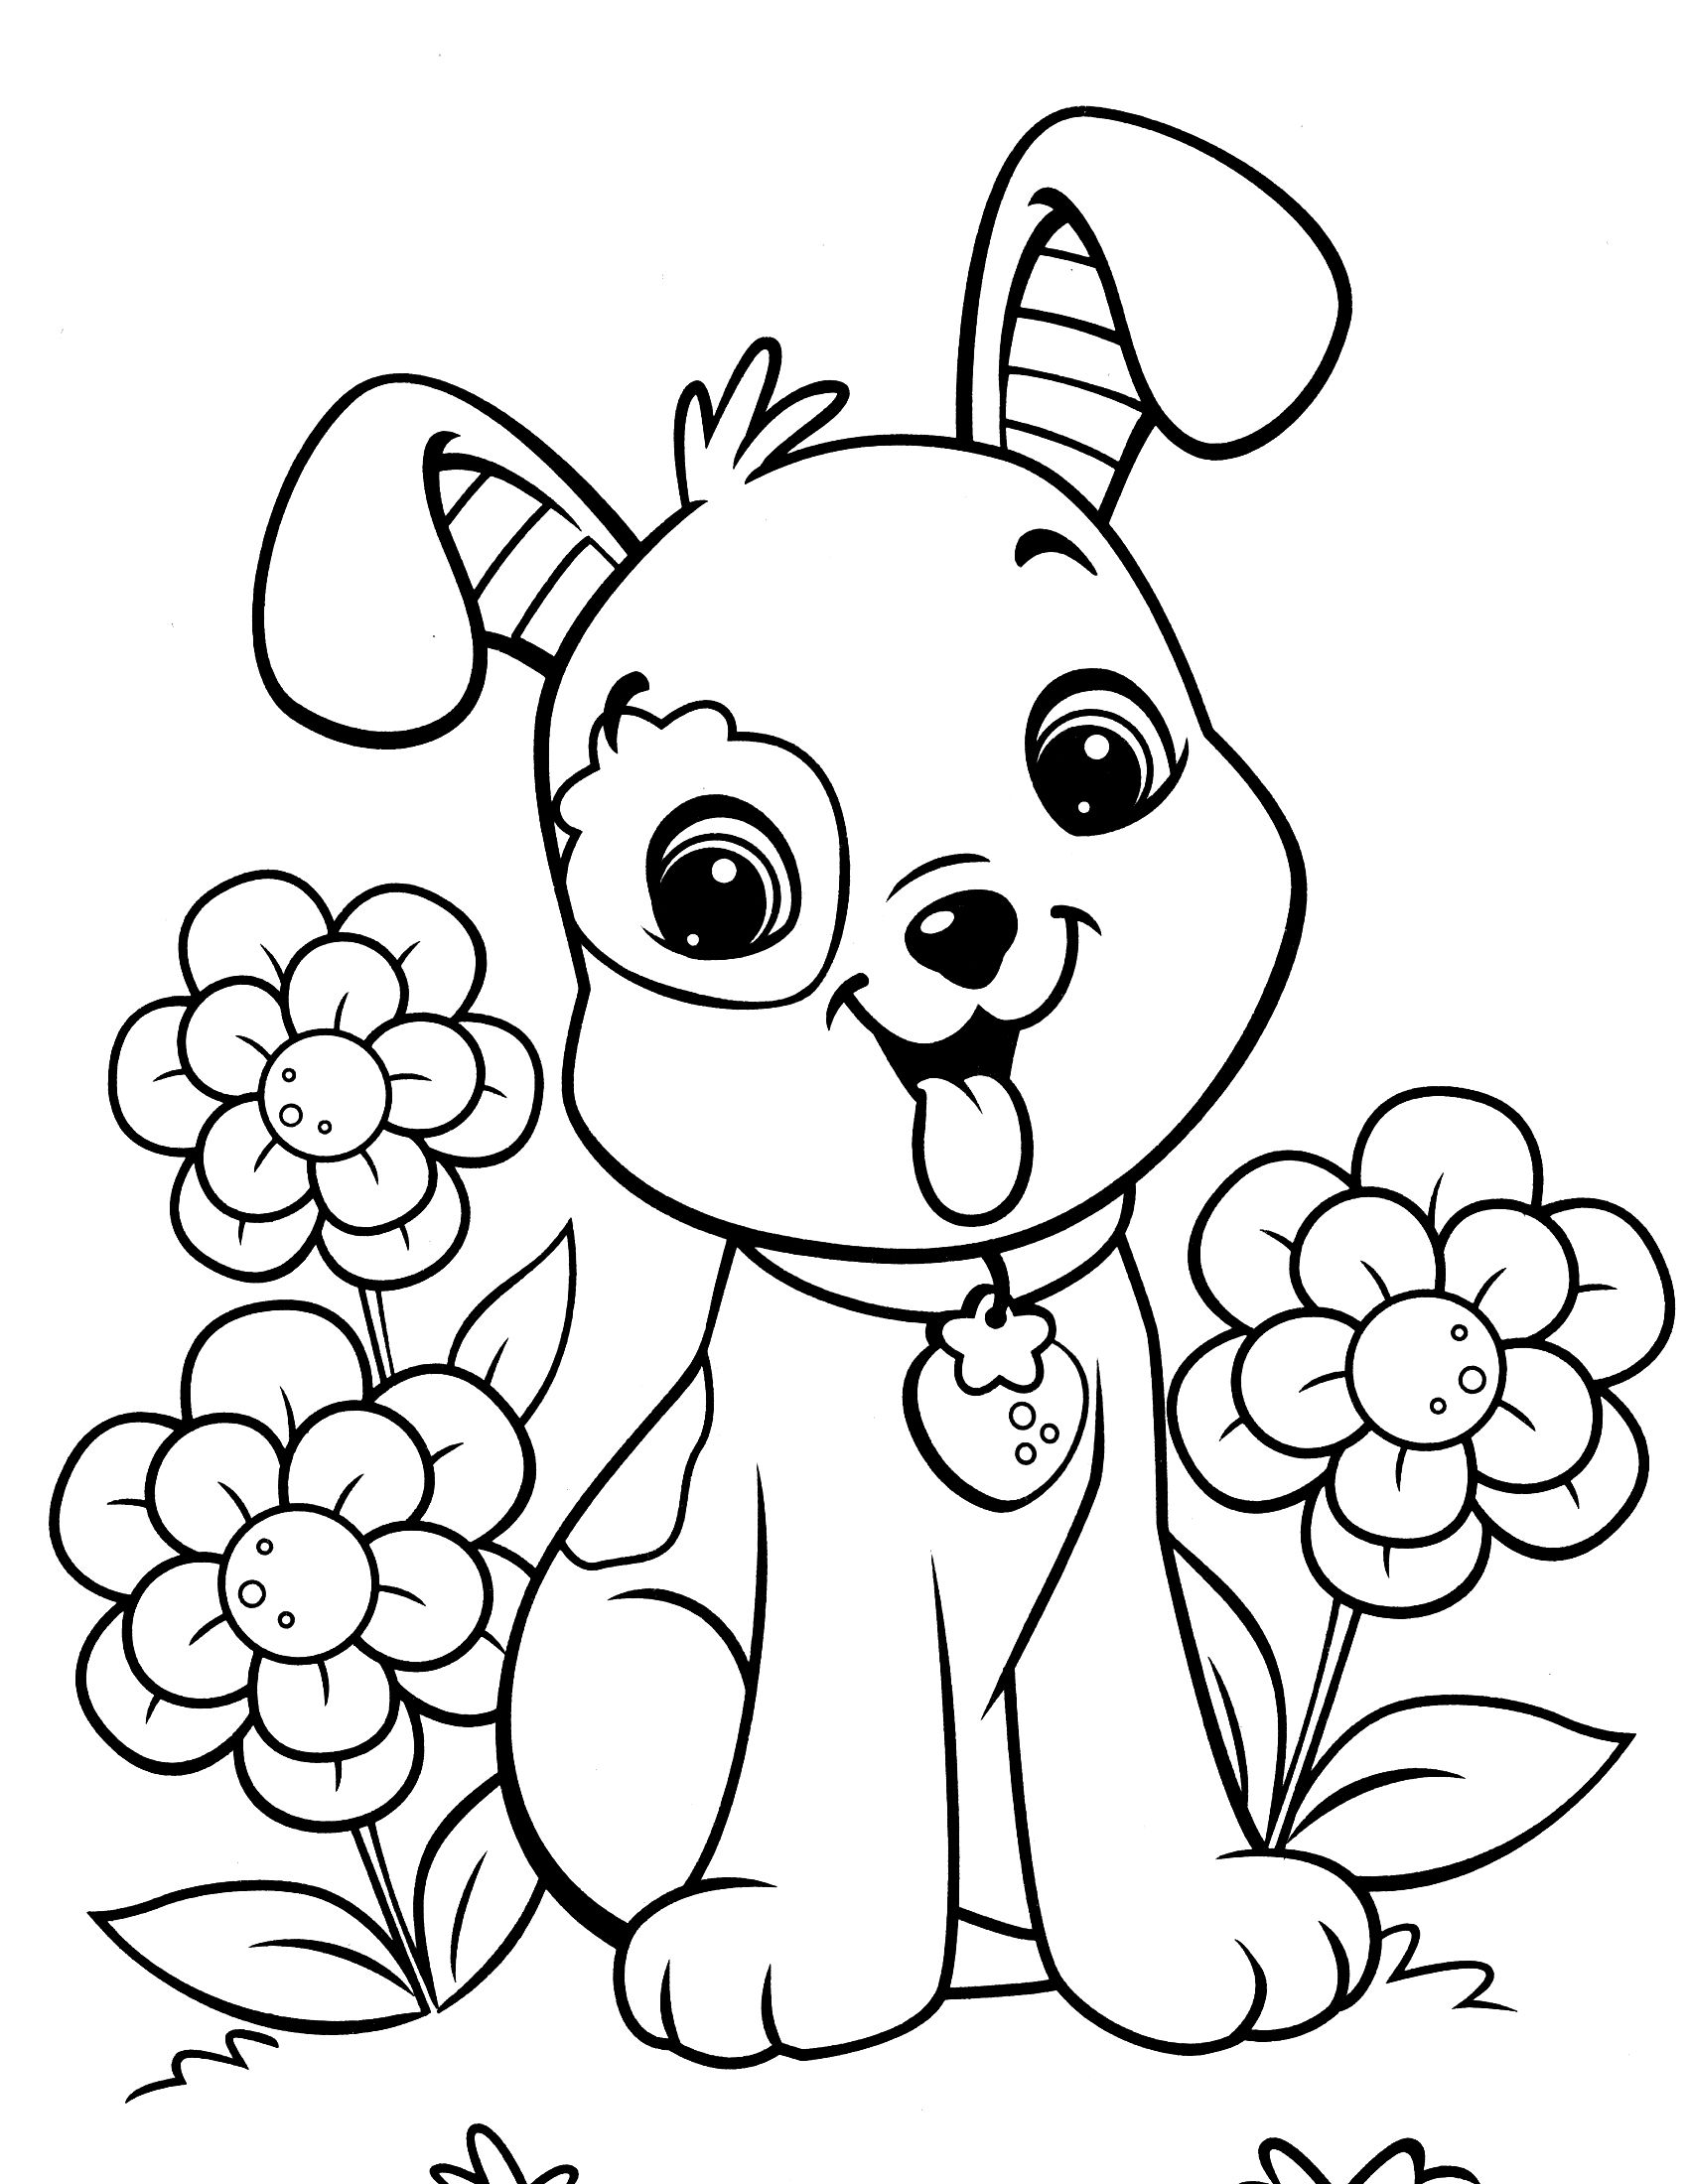 puppy coloring pages - Google Search | coloring | Pinterest ...